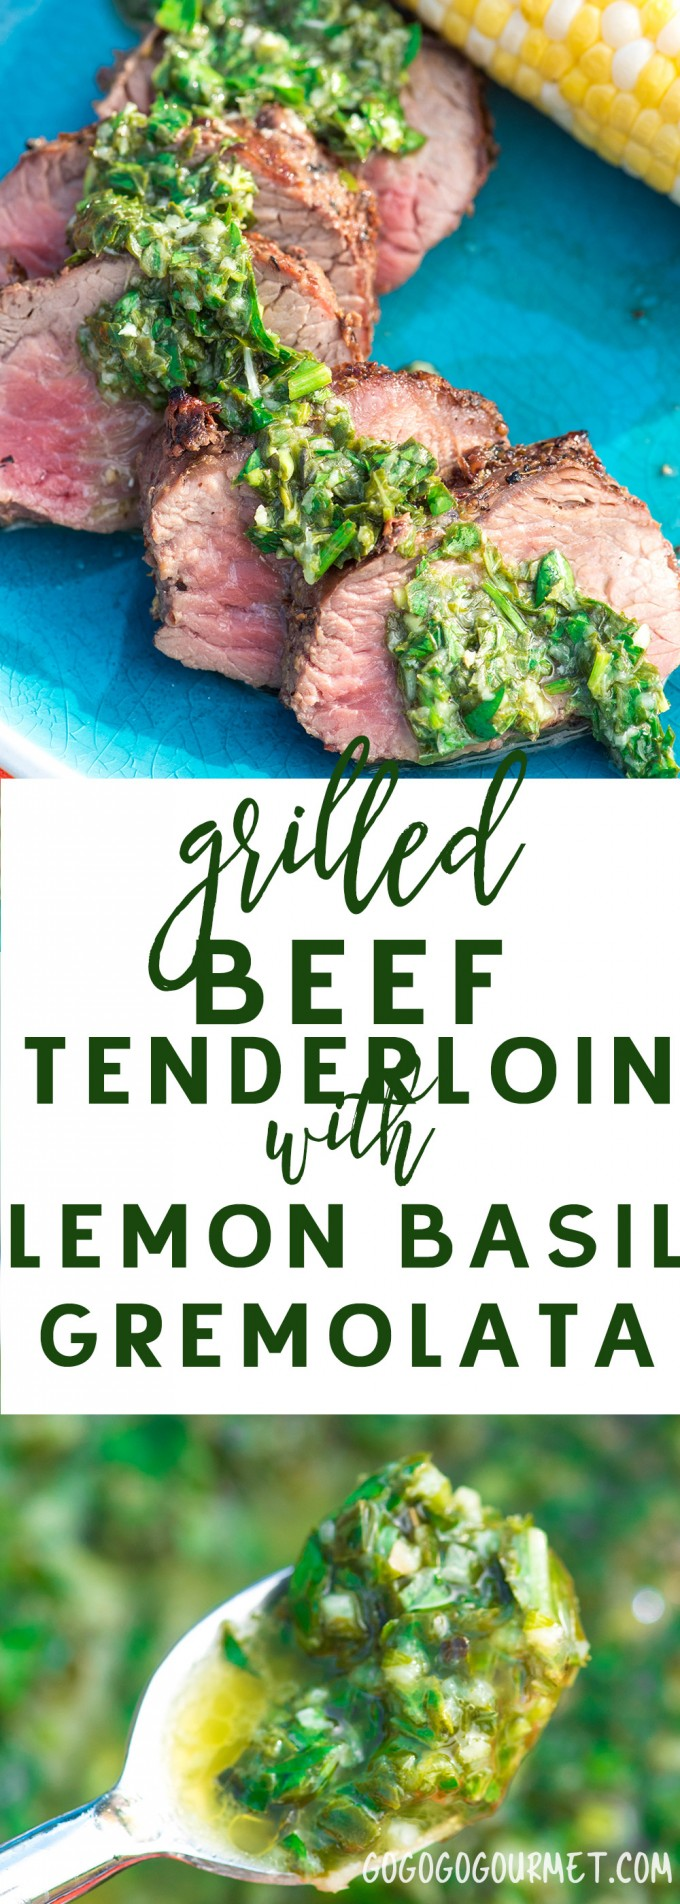 This Lemon Basil Gremolata is the perfect summer topping for grilled meat, fish, poultry or vegetables! Fast and easy, with no big kitchen equipment required.